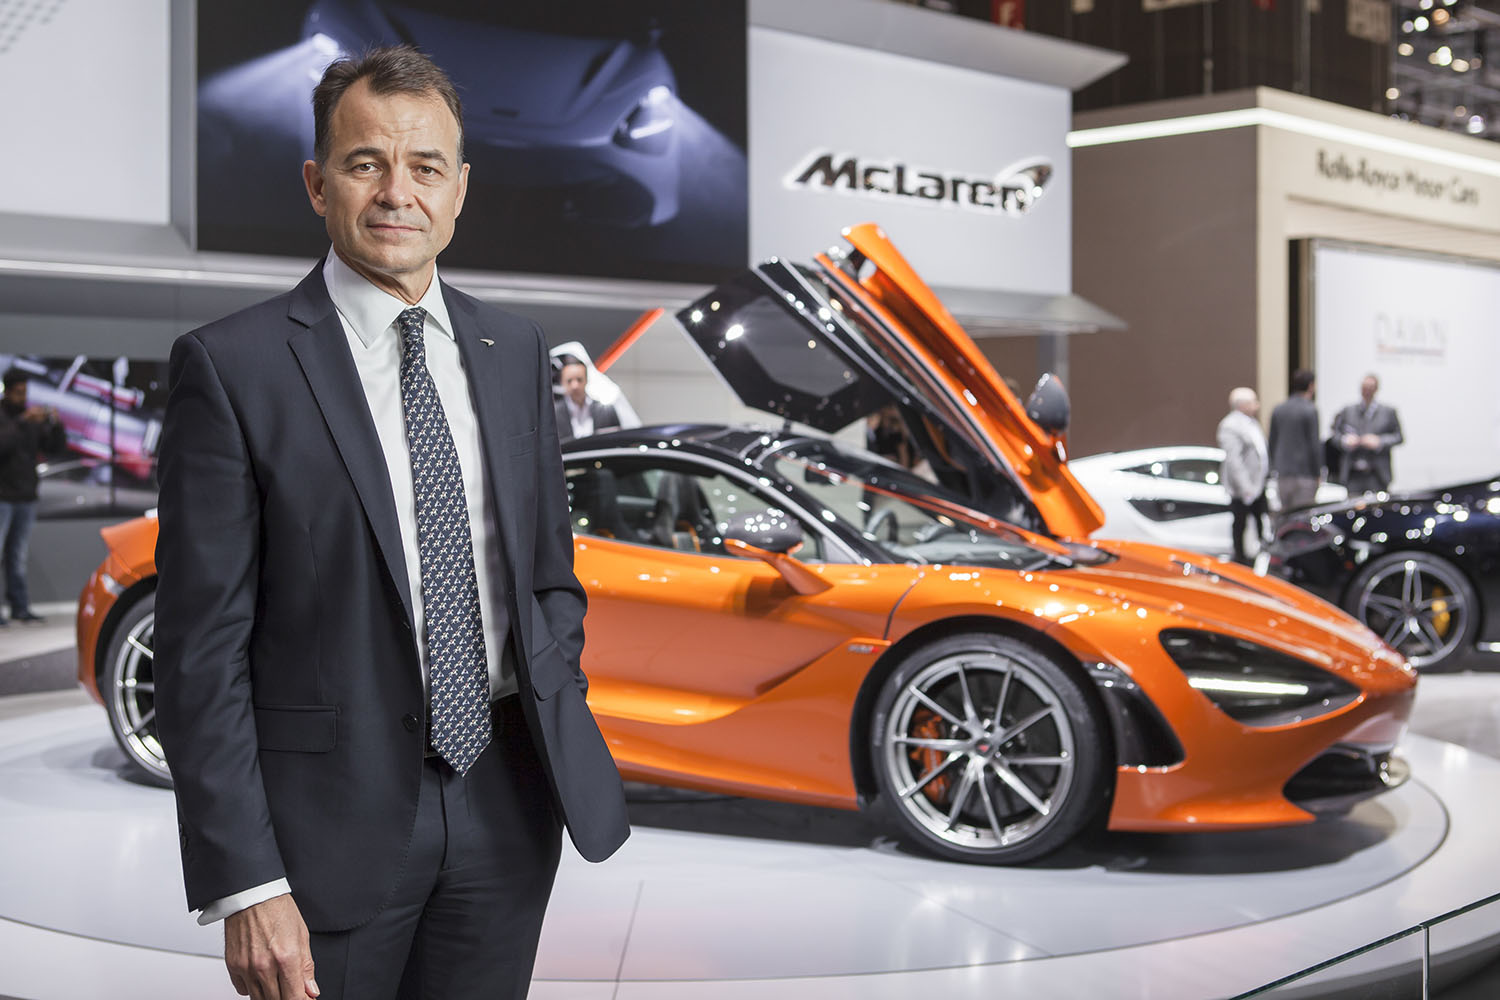 TrackWorthy-Jolyon-Nash-Executive-Director-Global-Sales-and-Marketing-McLaren-Automotive